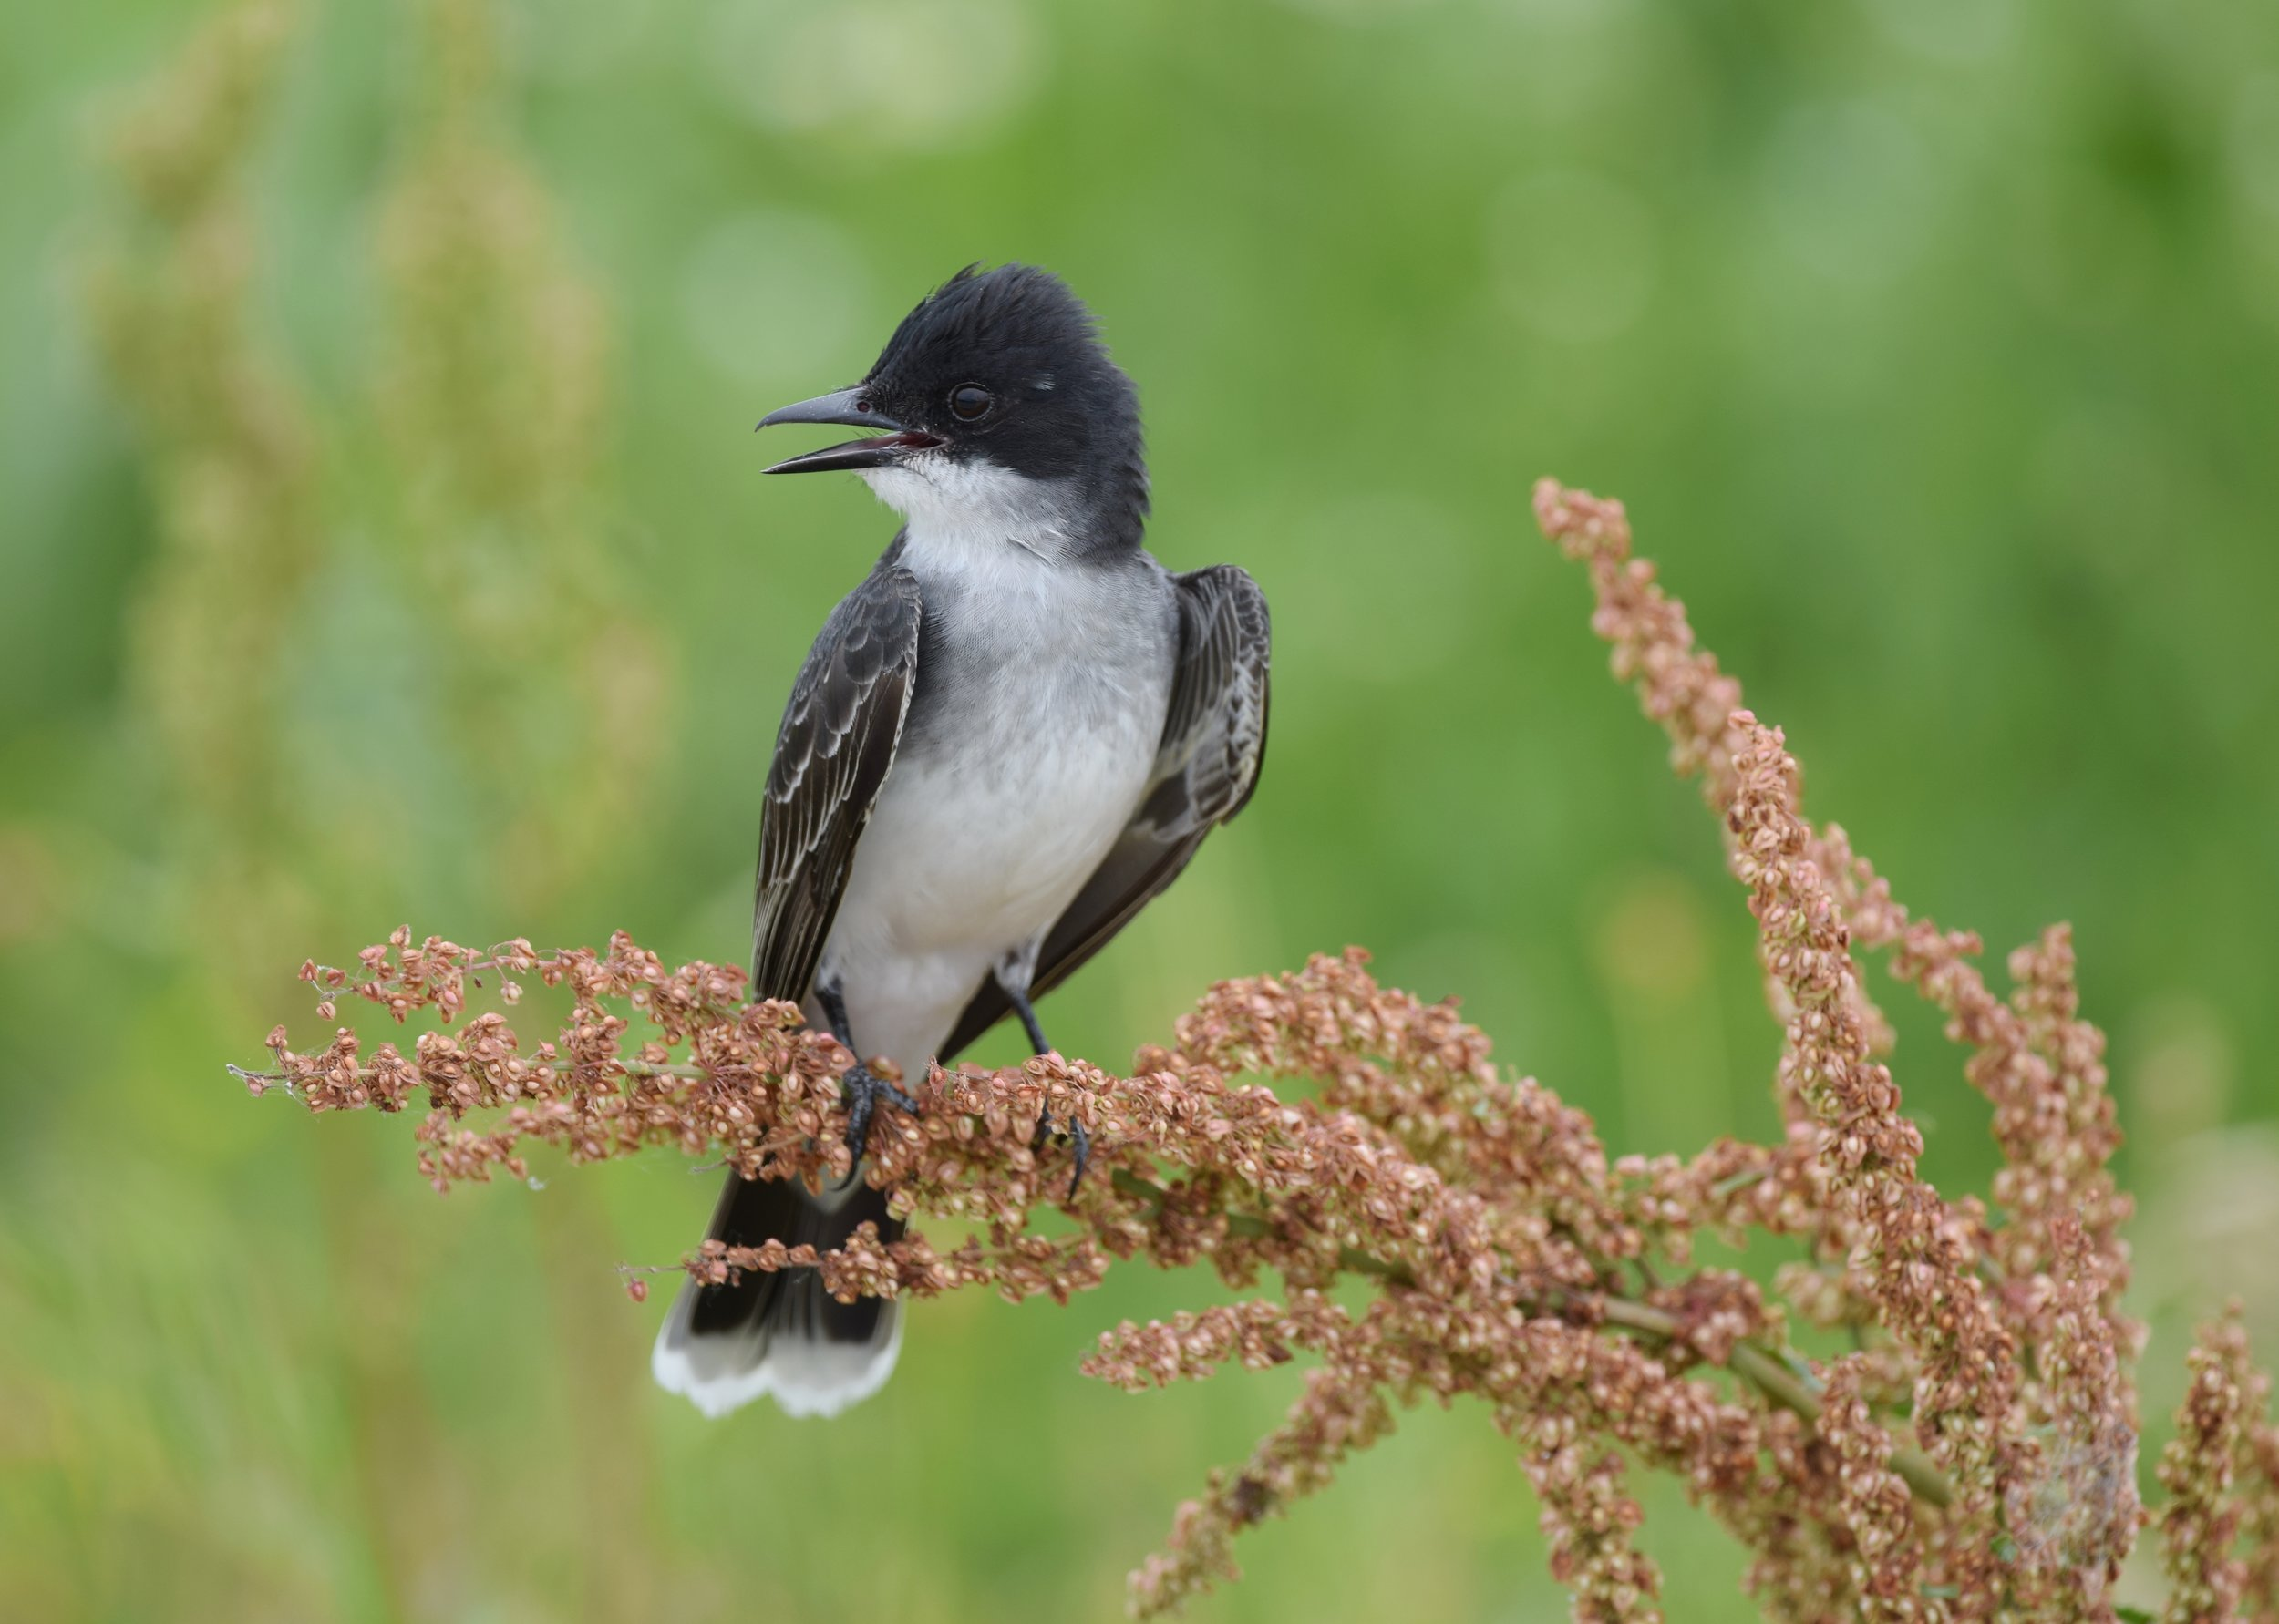 - Eastern Kingbird (Tyrannus tyrannus)Eastern Kingbirds live mostly in open, grassy areas and on the edges of forests. Their diet consists of insects and fruit. Eastern Kingbirds grow to be 1.2-1.9 oz. with a wingspan of 13-15 in. Their song is a high sputtering that ends with buzzing. Their name comes from their hidden crest, which can be one of multiple bright colors and only is shown when threatened. Eastern Kingbirds may be mistaken for Eastern Wood Pewees, but can be distinguished by their white-tipped tail. They are protected on the US Migratory Bird lists.Photo Credits: Andy Reago & Chrissy McClarren